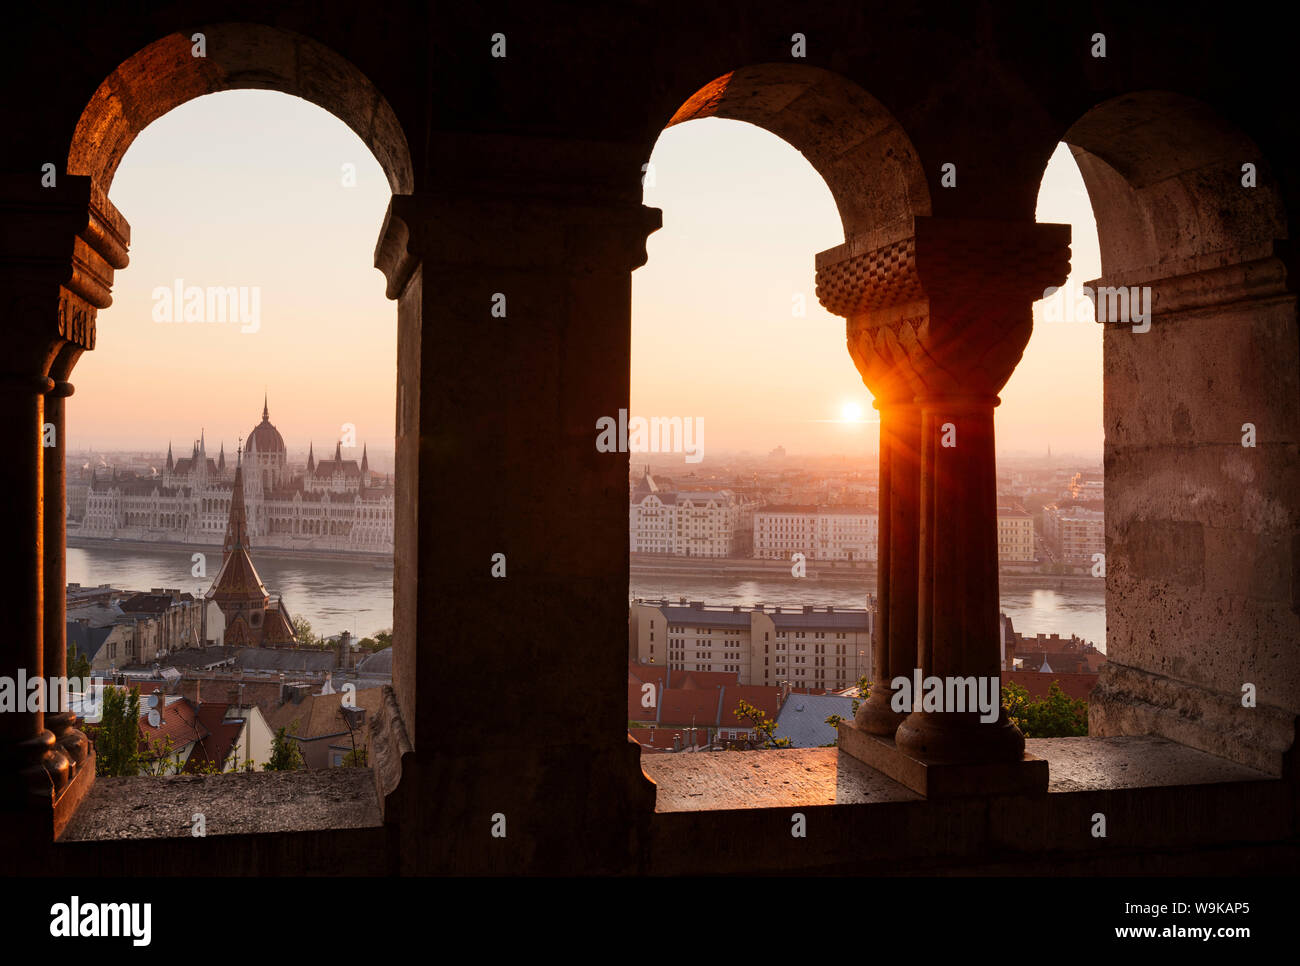 View from Fisherman's Bastion over Danube River and Hungarian Parliament Building at dawn, Budapest, Hungary, Europe Stock Photo